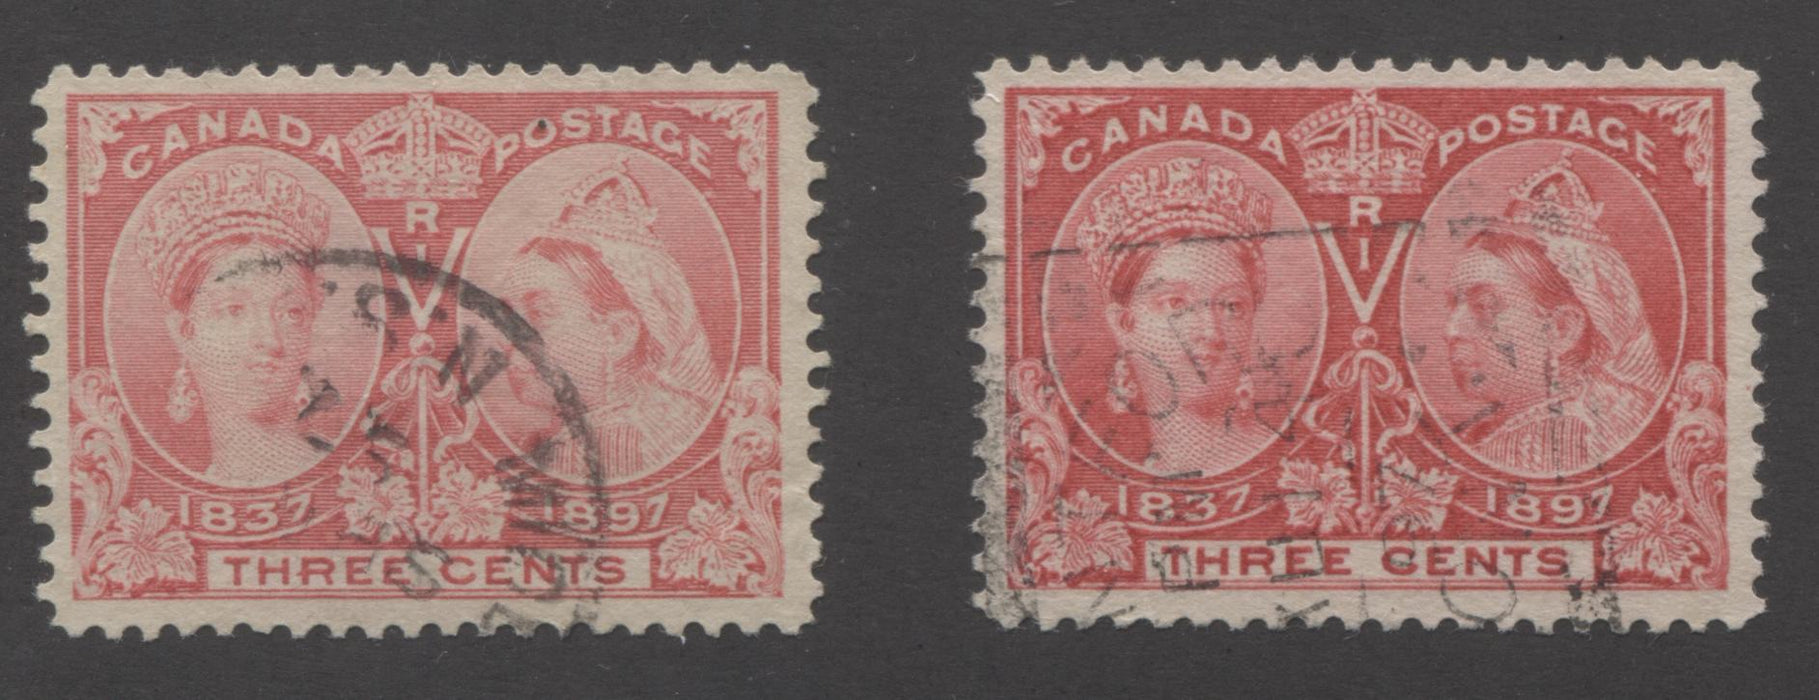 Canada #53, 53i 3c Bright Rose and Pale Rose Queen Victoria, 1897 Diamond Jubilee Issue, Very Fine Used Singles Brixton Chrome